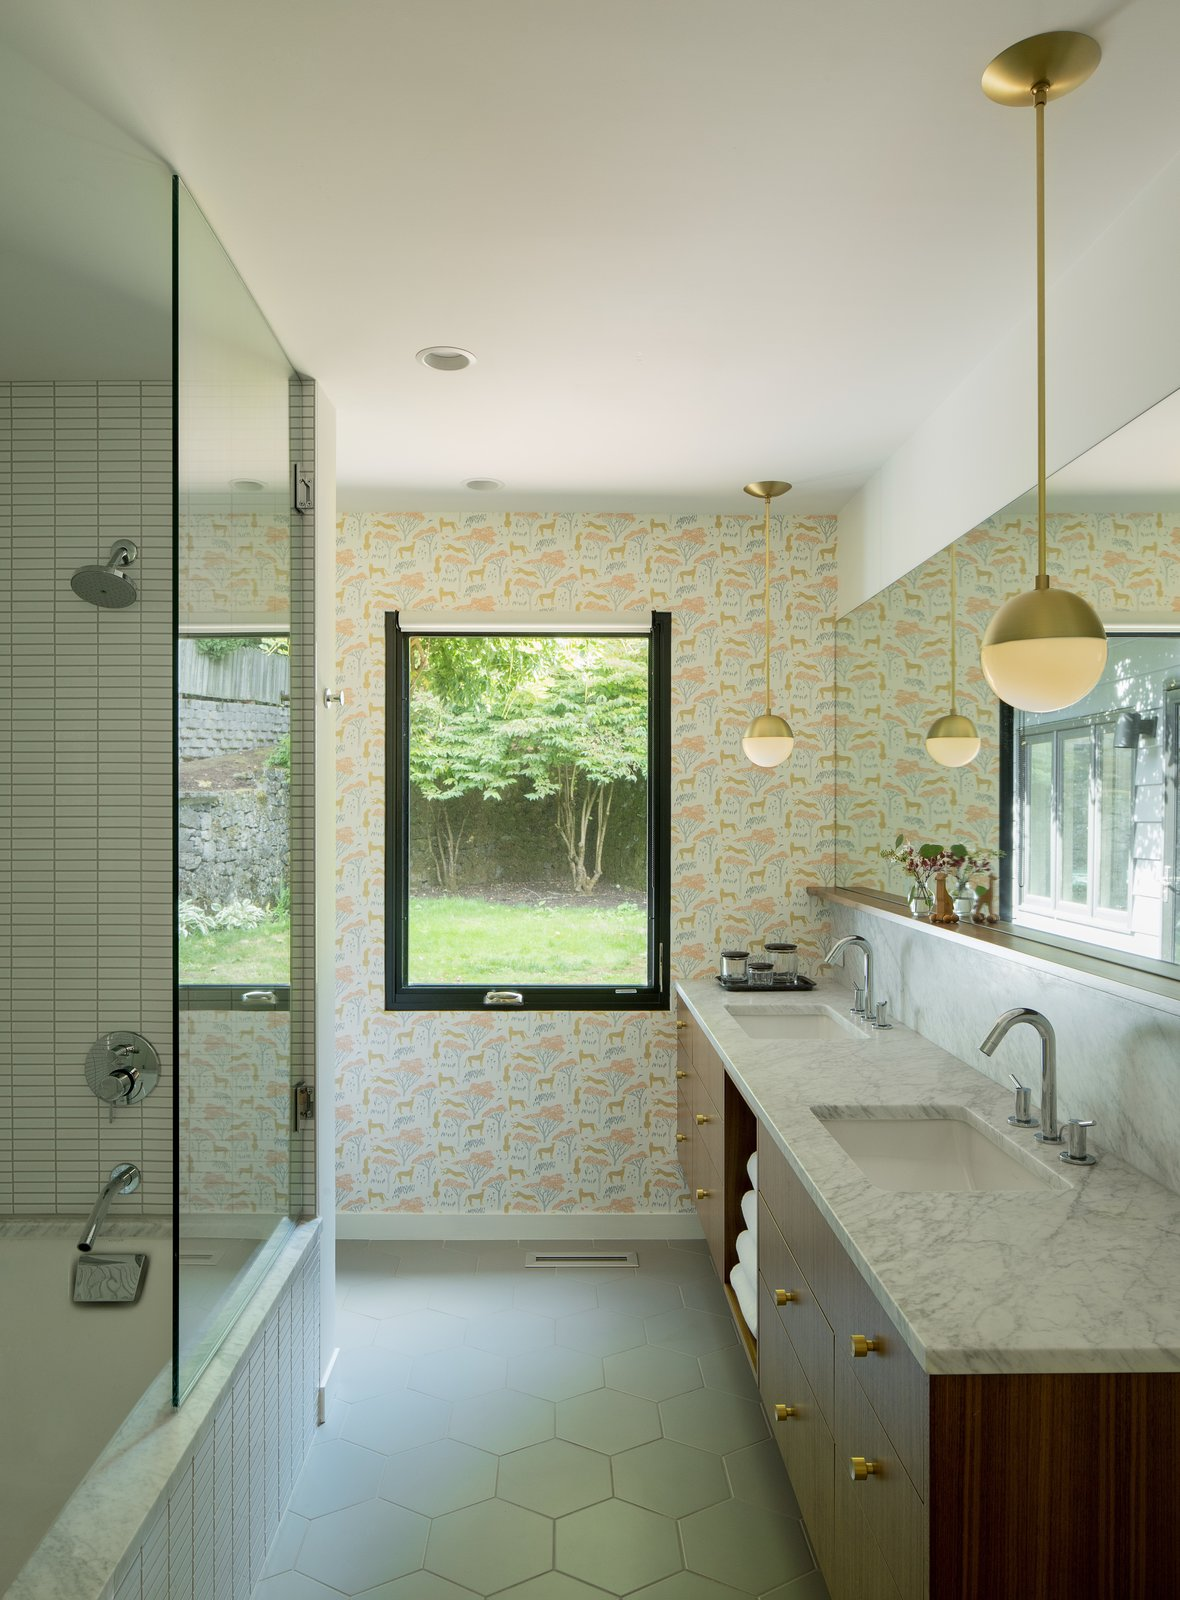 Bath, Porcelain Tile, Pendant, Marble, Undermount, Open, Undermount, Recessed, and Full Now, the space looks both sophisticated and playful thanks to the addition of whimsical animal-printed wallpaper, marble countertops, tiles from Ann Sacks, and brass pendant lights designed by Cedar & Moss for Rejuvenation.    Best Bath Marble Undermount Recessed Undermount Photos from Before & After: A 1950s Midcentury Abode Gets a Gorgeous Upgrade